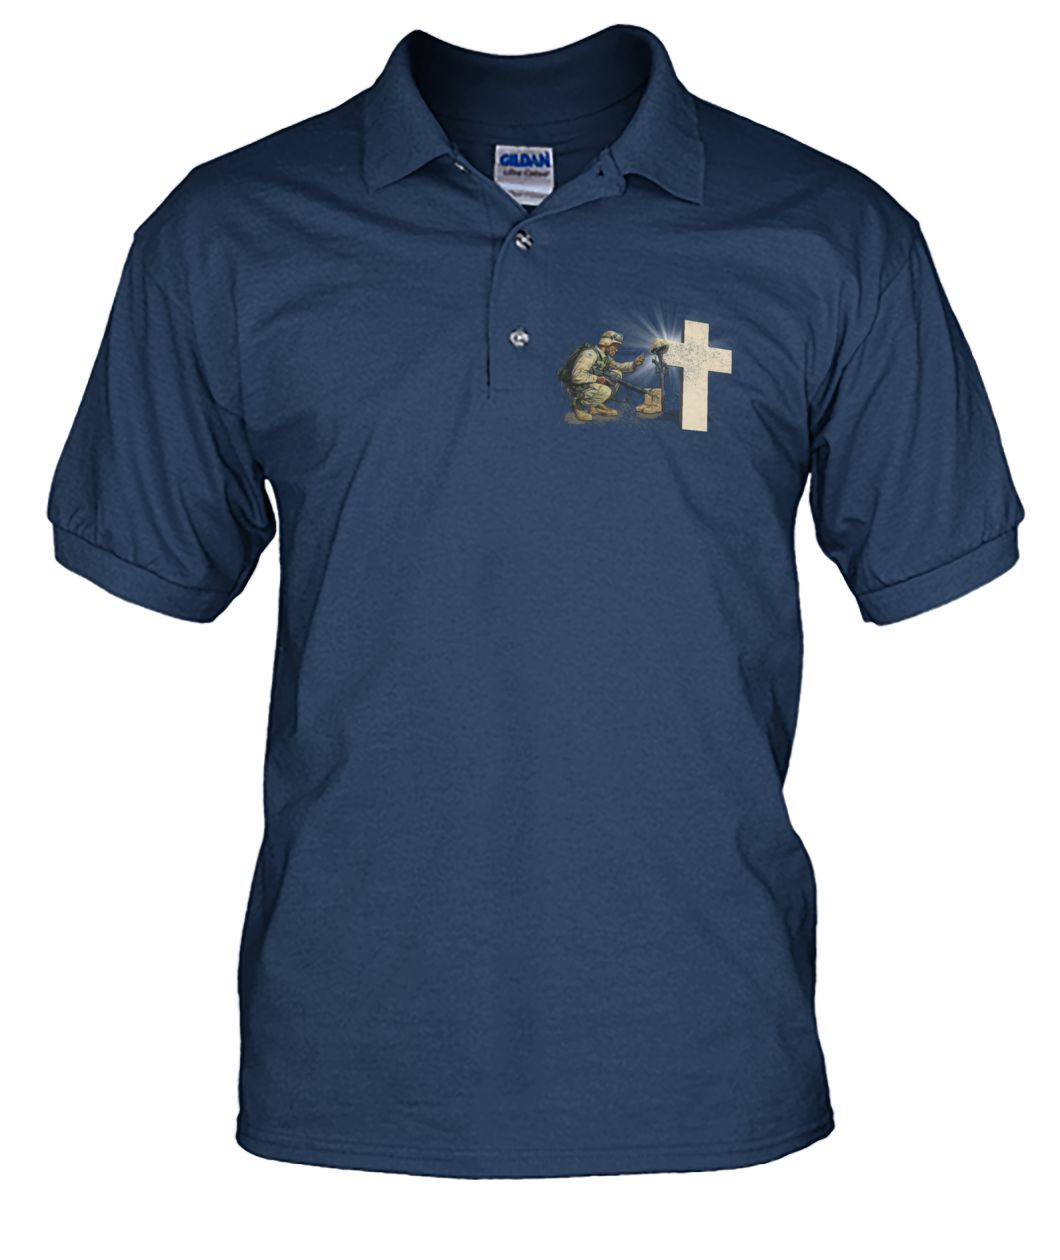 Stand for the flag kneel for the cross polo shirt wp